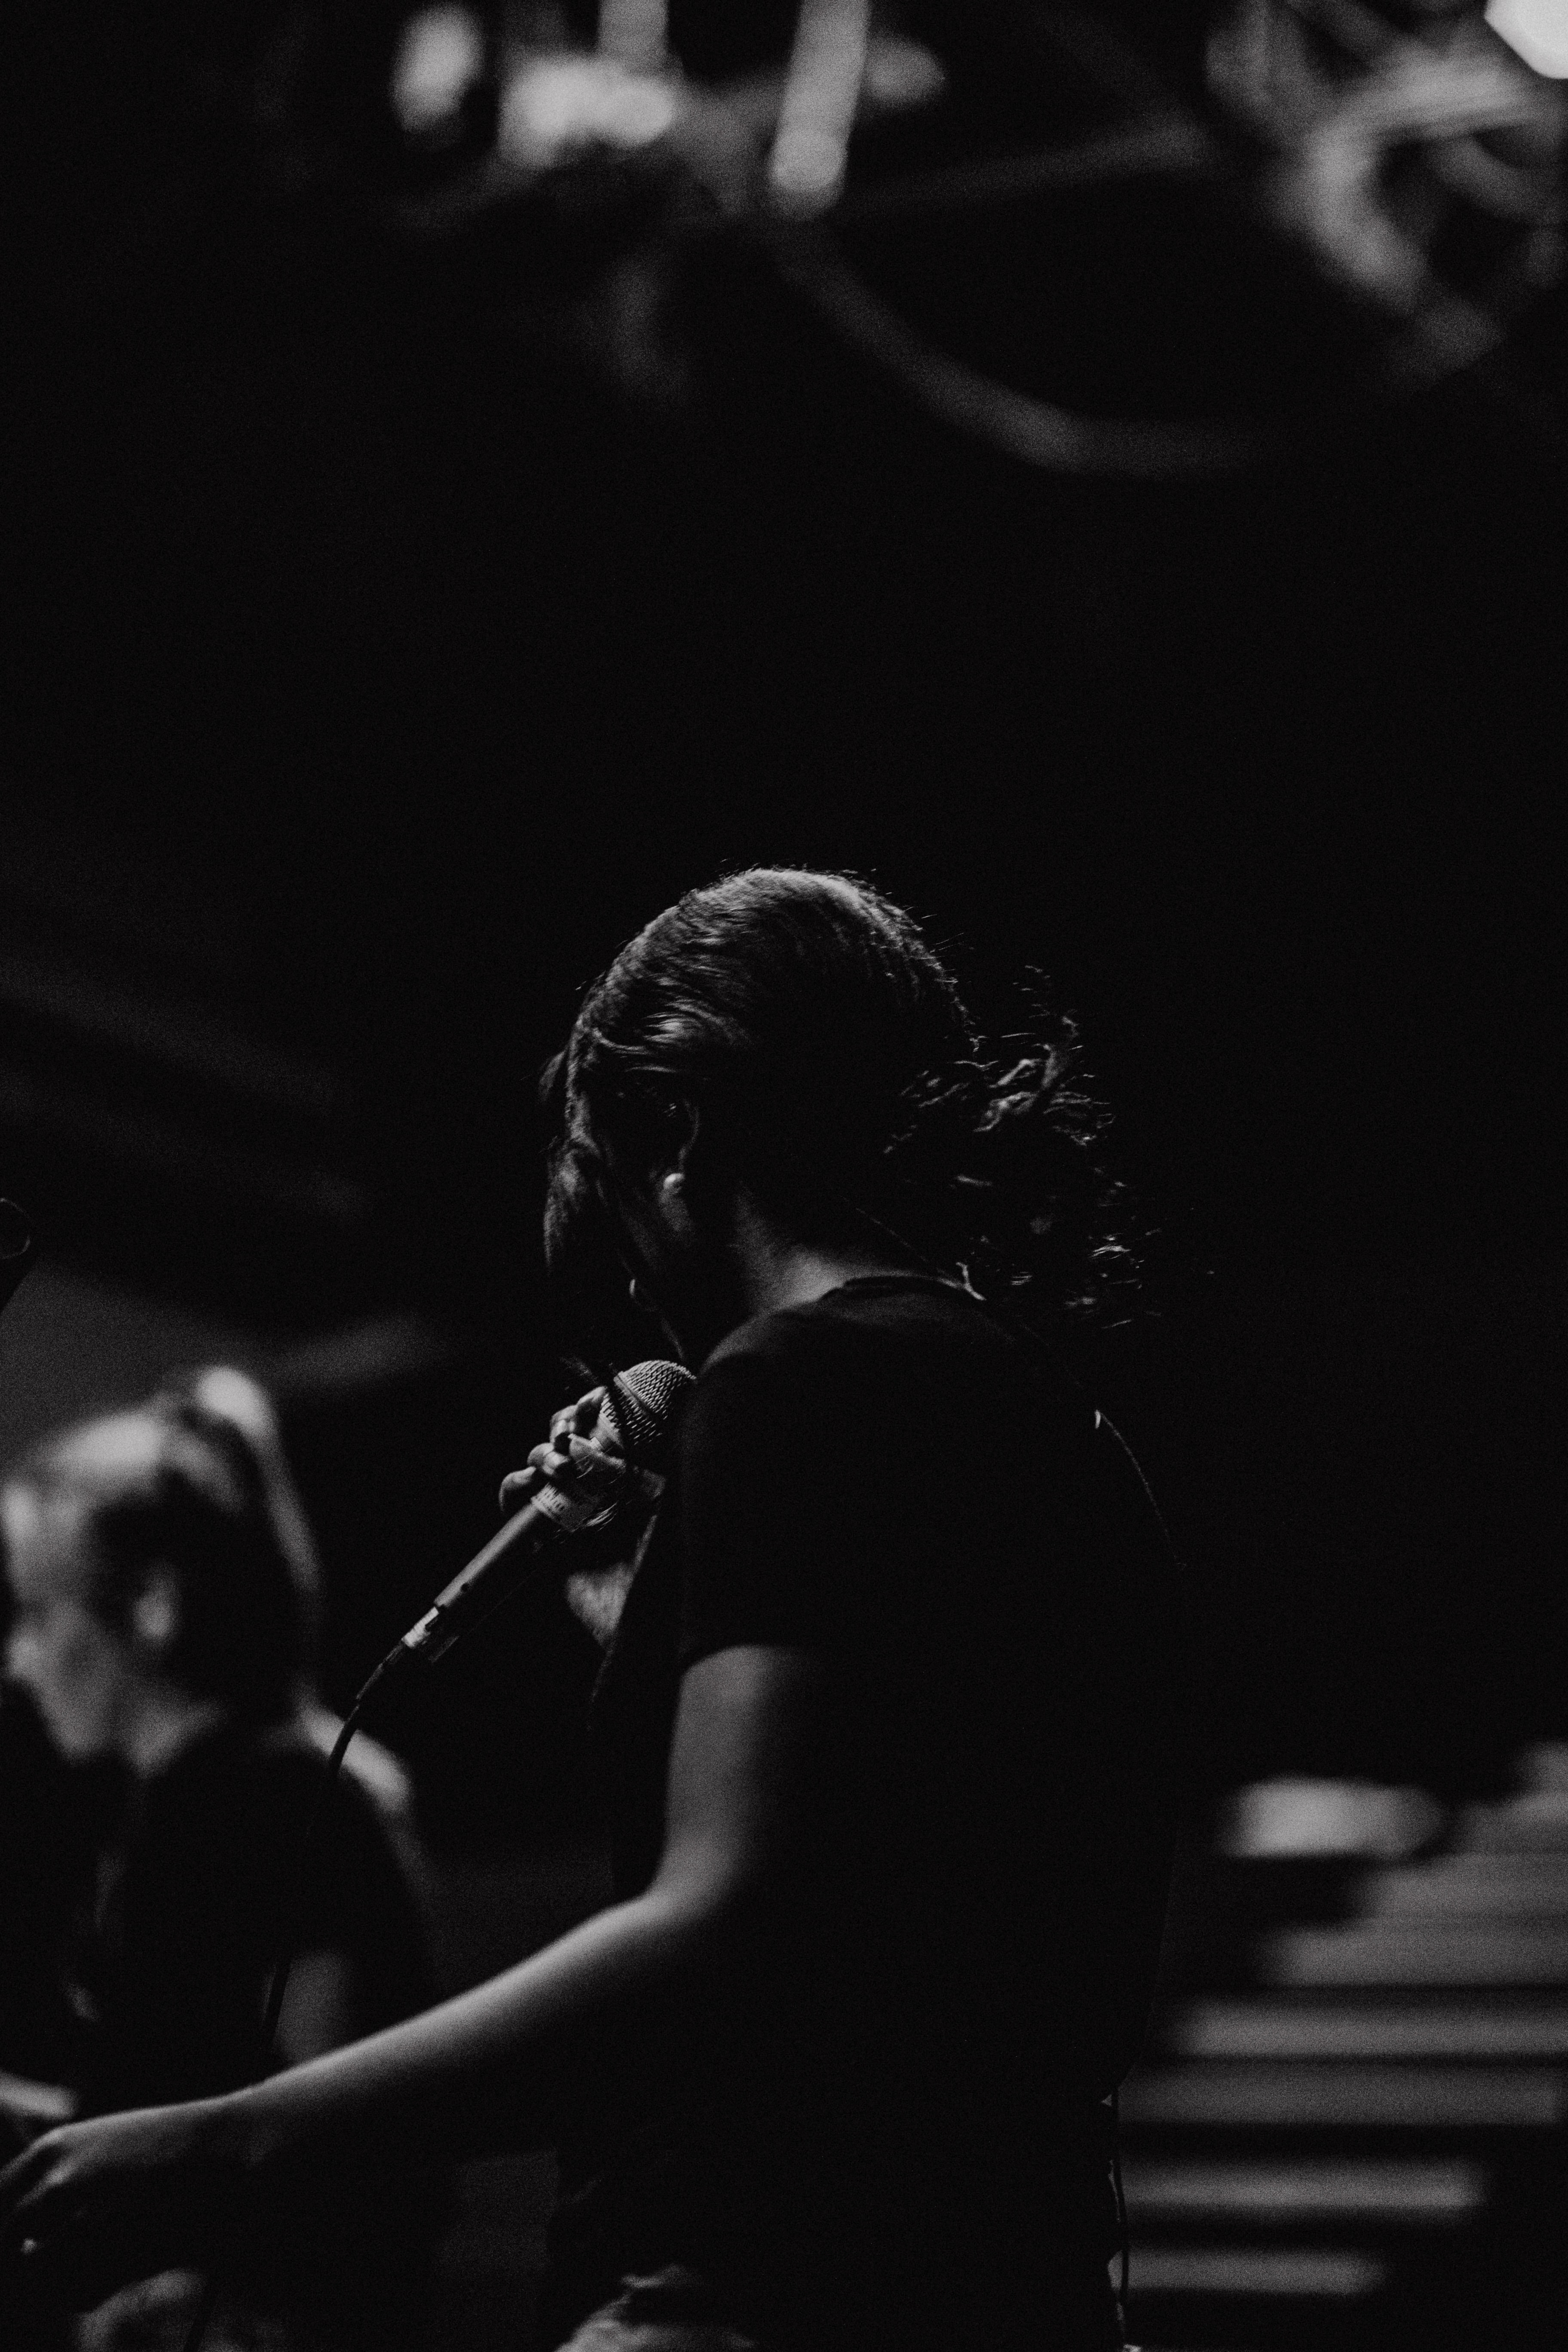 grayscale photography of person holding microphone